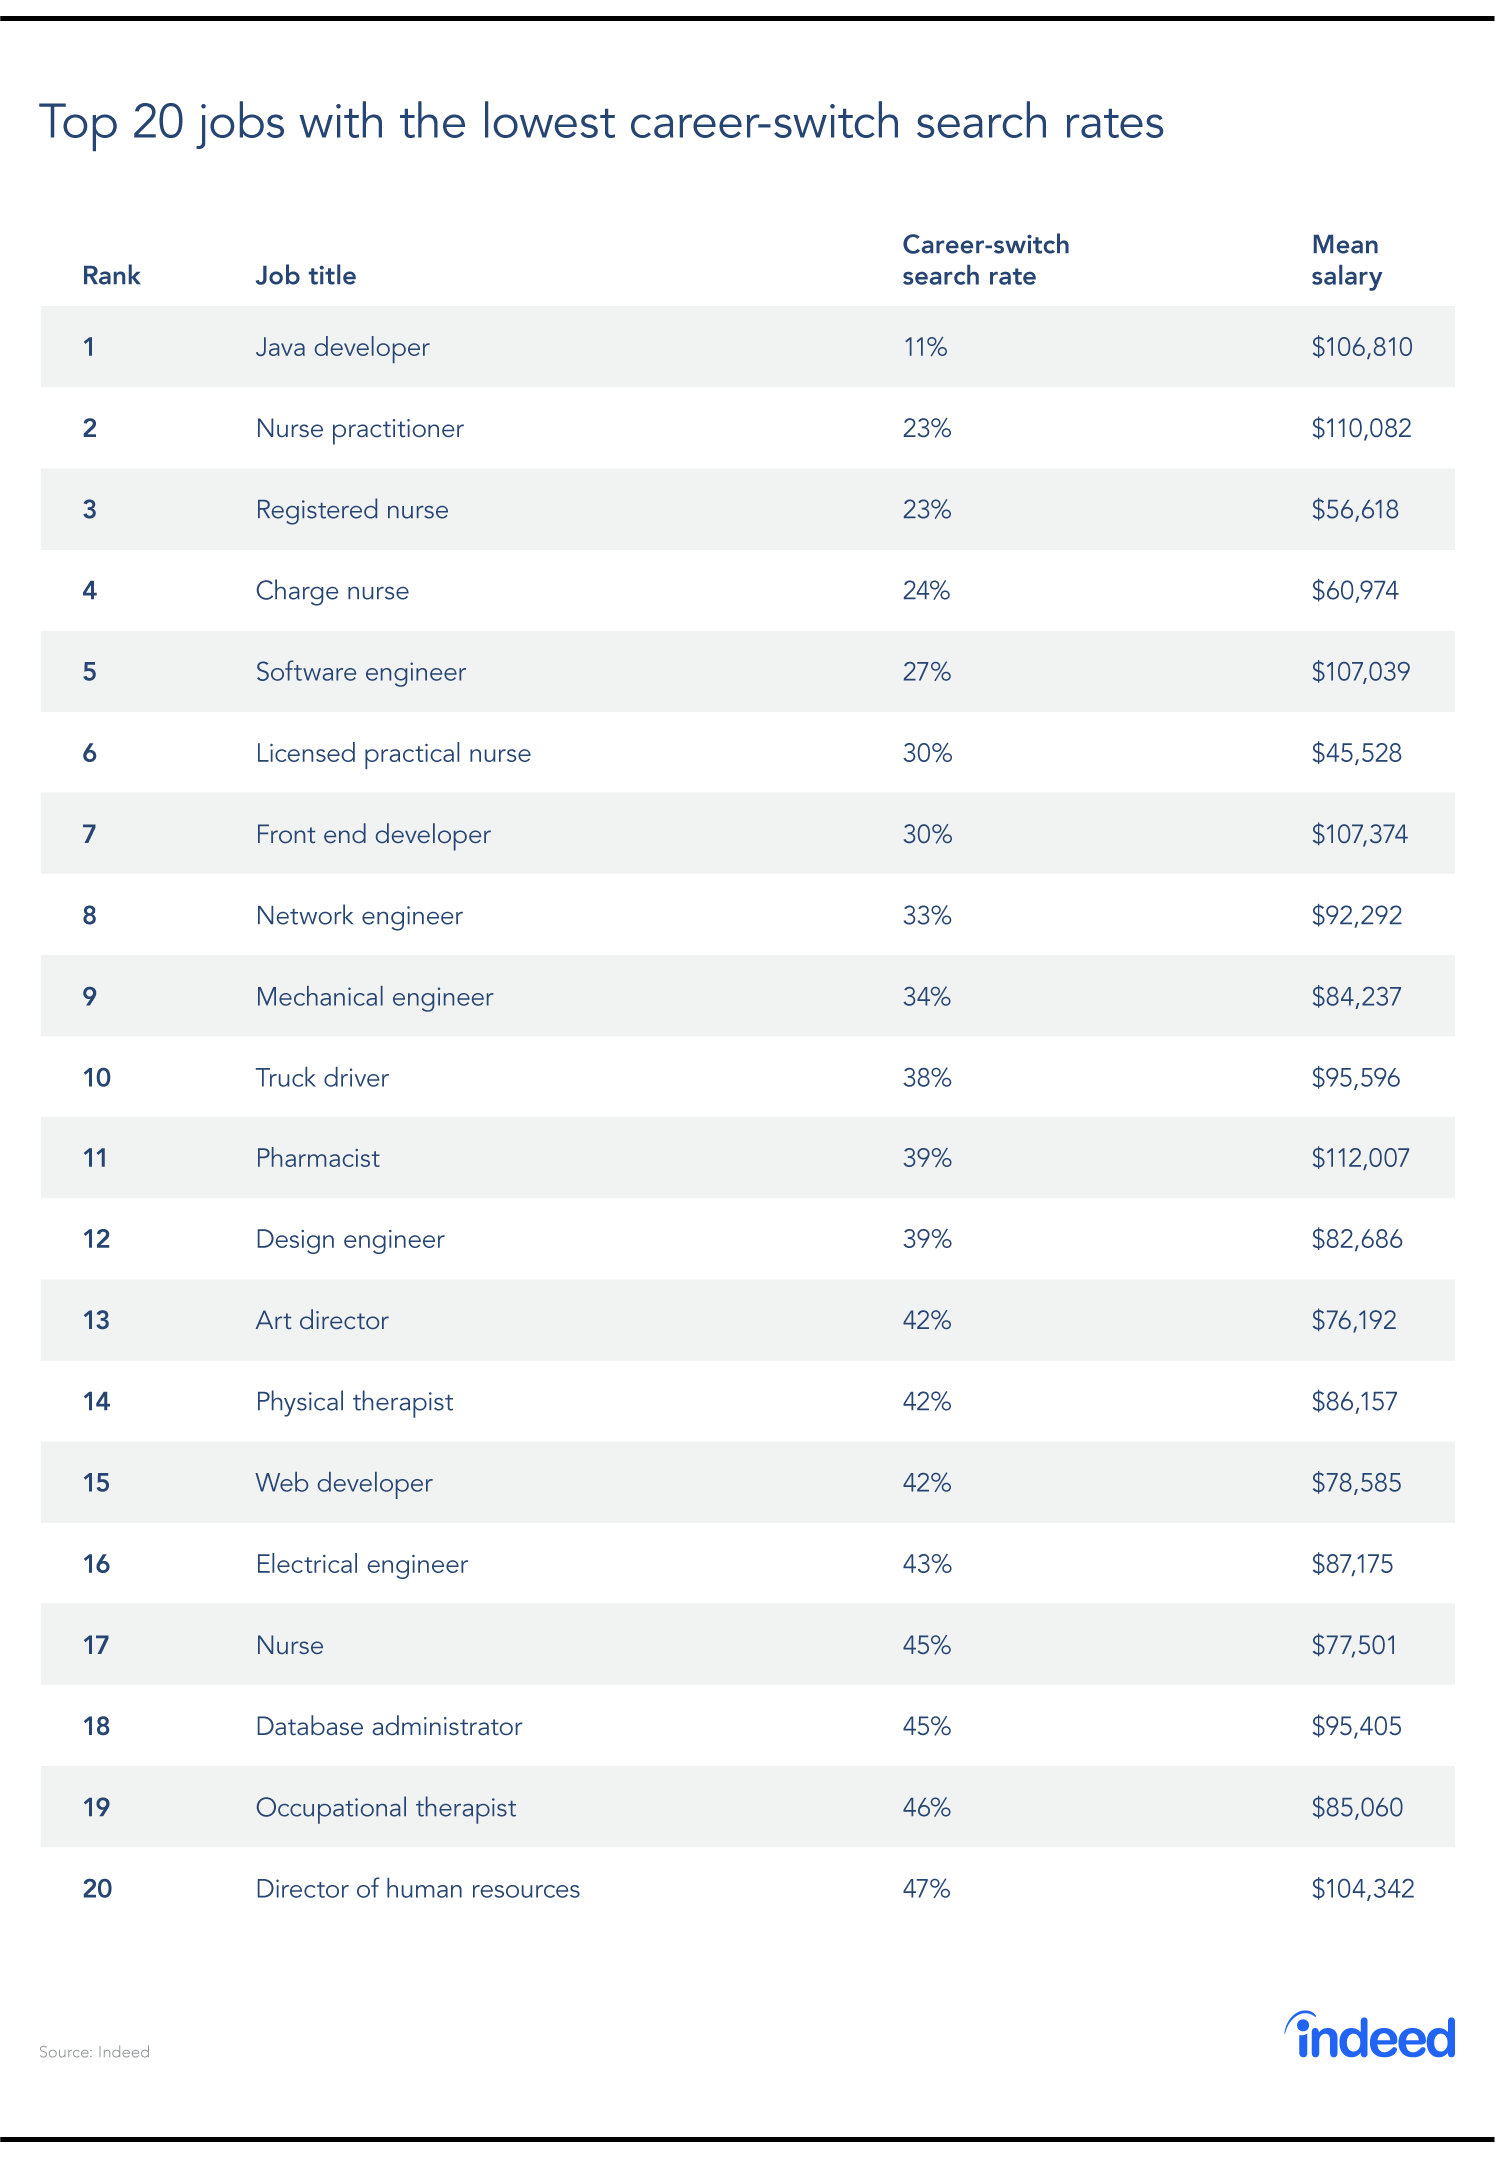 The top jobs with the lowest career-switch search rate and the mean salary of each, as of October 2019.